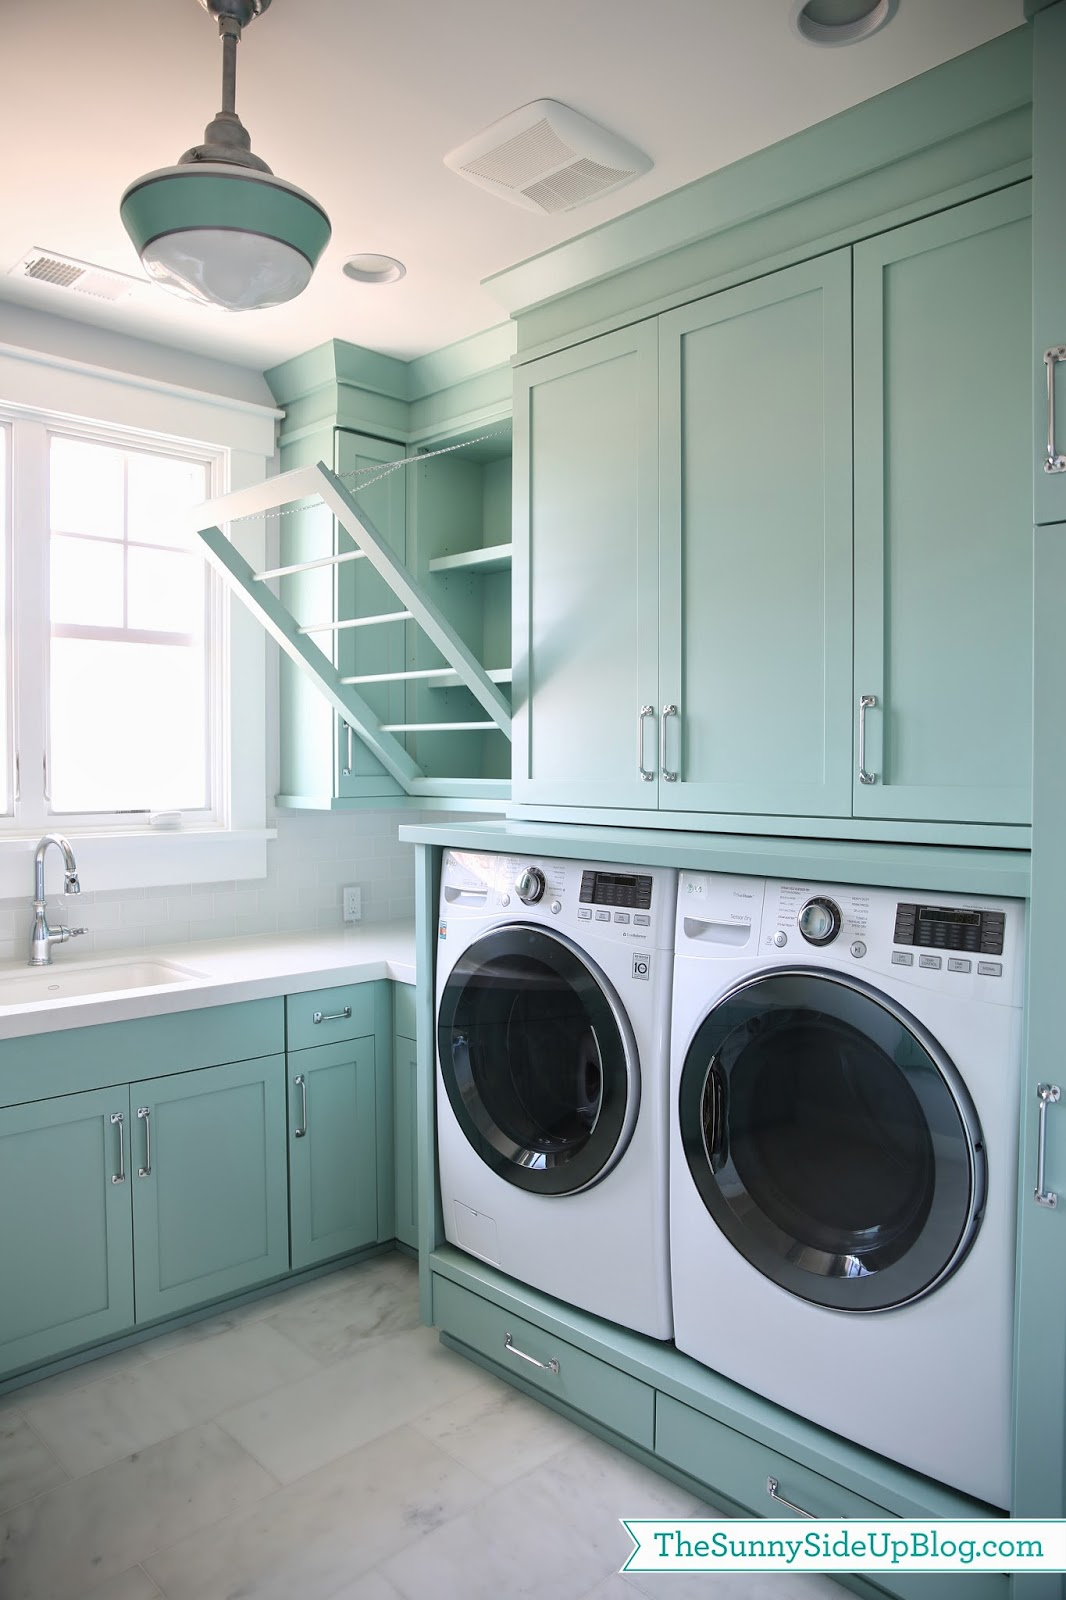 upstairs laundry room the sunny side up blog. Black Bedroom Furniture Sets. Home Design Ideas